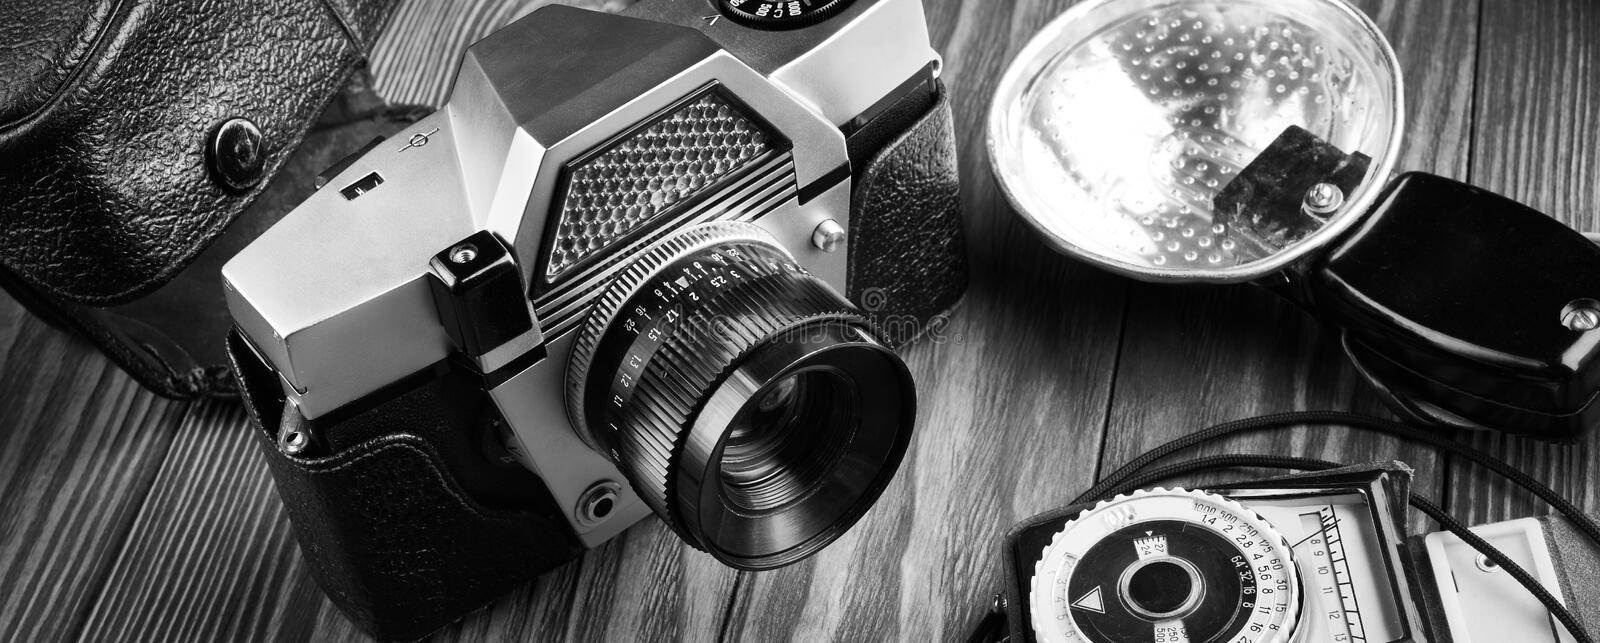 Old vintage photo camera, flash and exposure meter stock photography